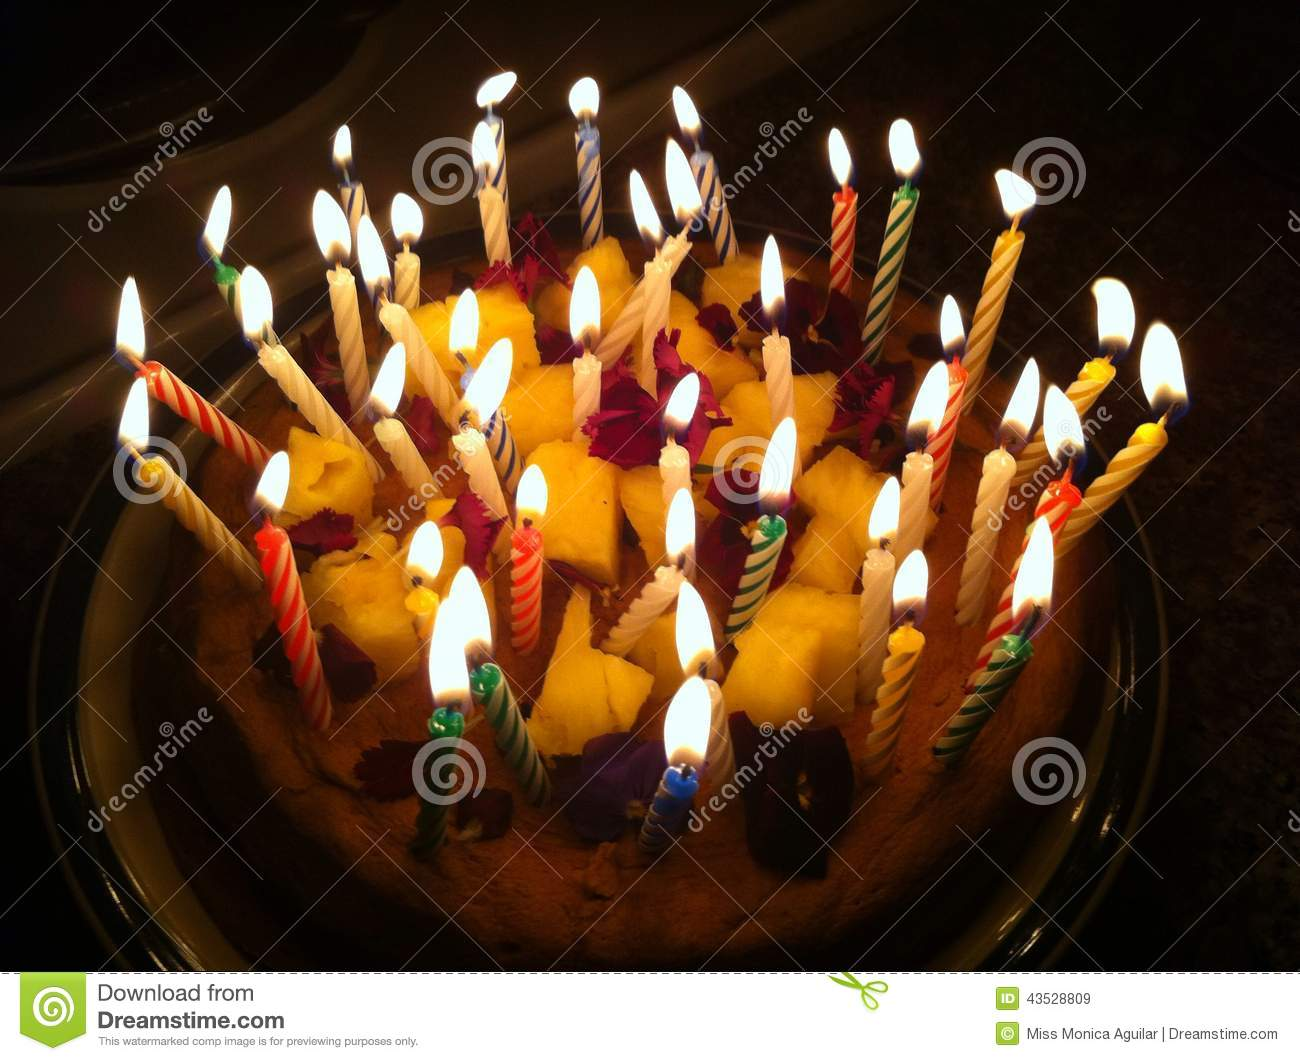 Images Of Birthday Cakes With Lots Of Candles